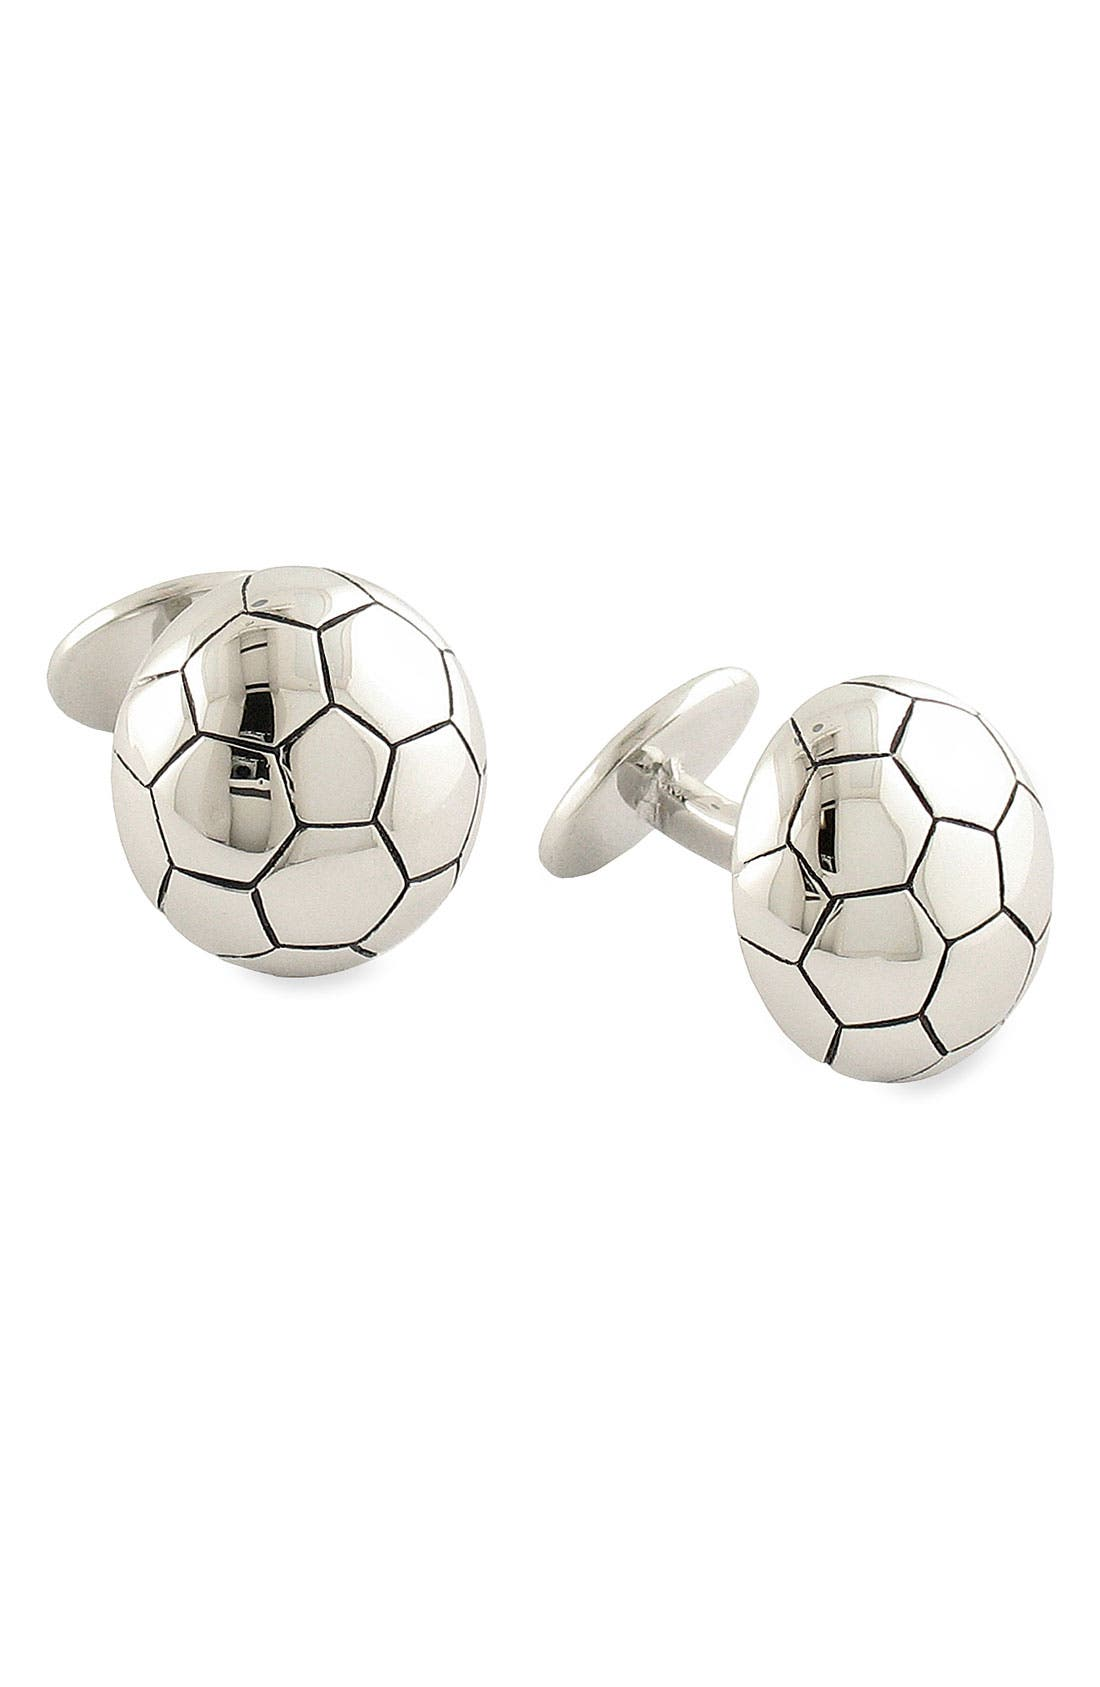 Alternate Image 1 Selected - David Donahue 'Soccer' Sterling Silver Cuff Links